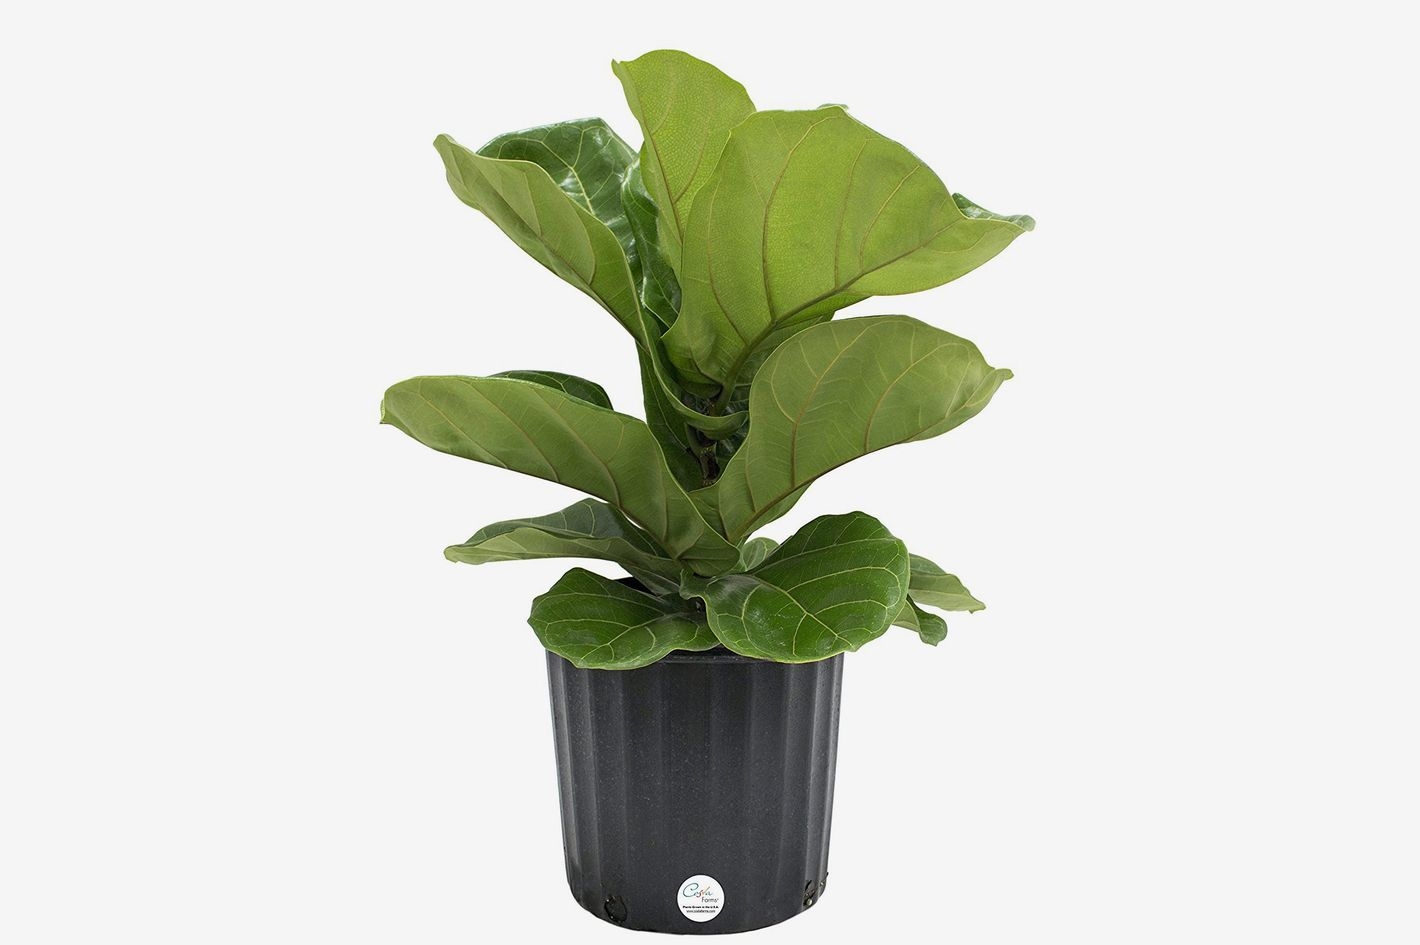 Costa Farms Ficus Pandurata Fiddle-leaf Fig Live Indoor Floor Plant